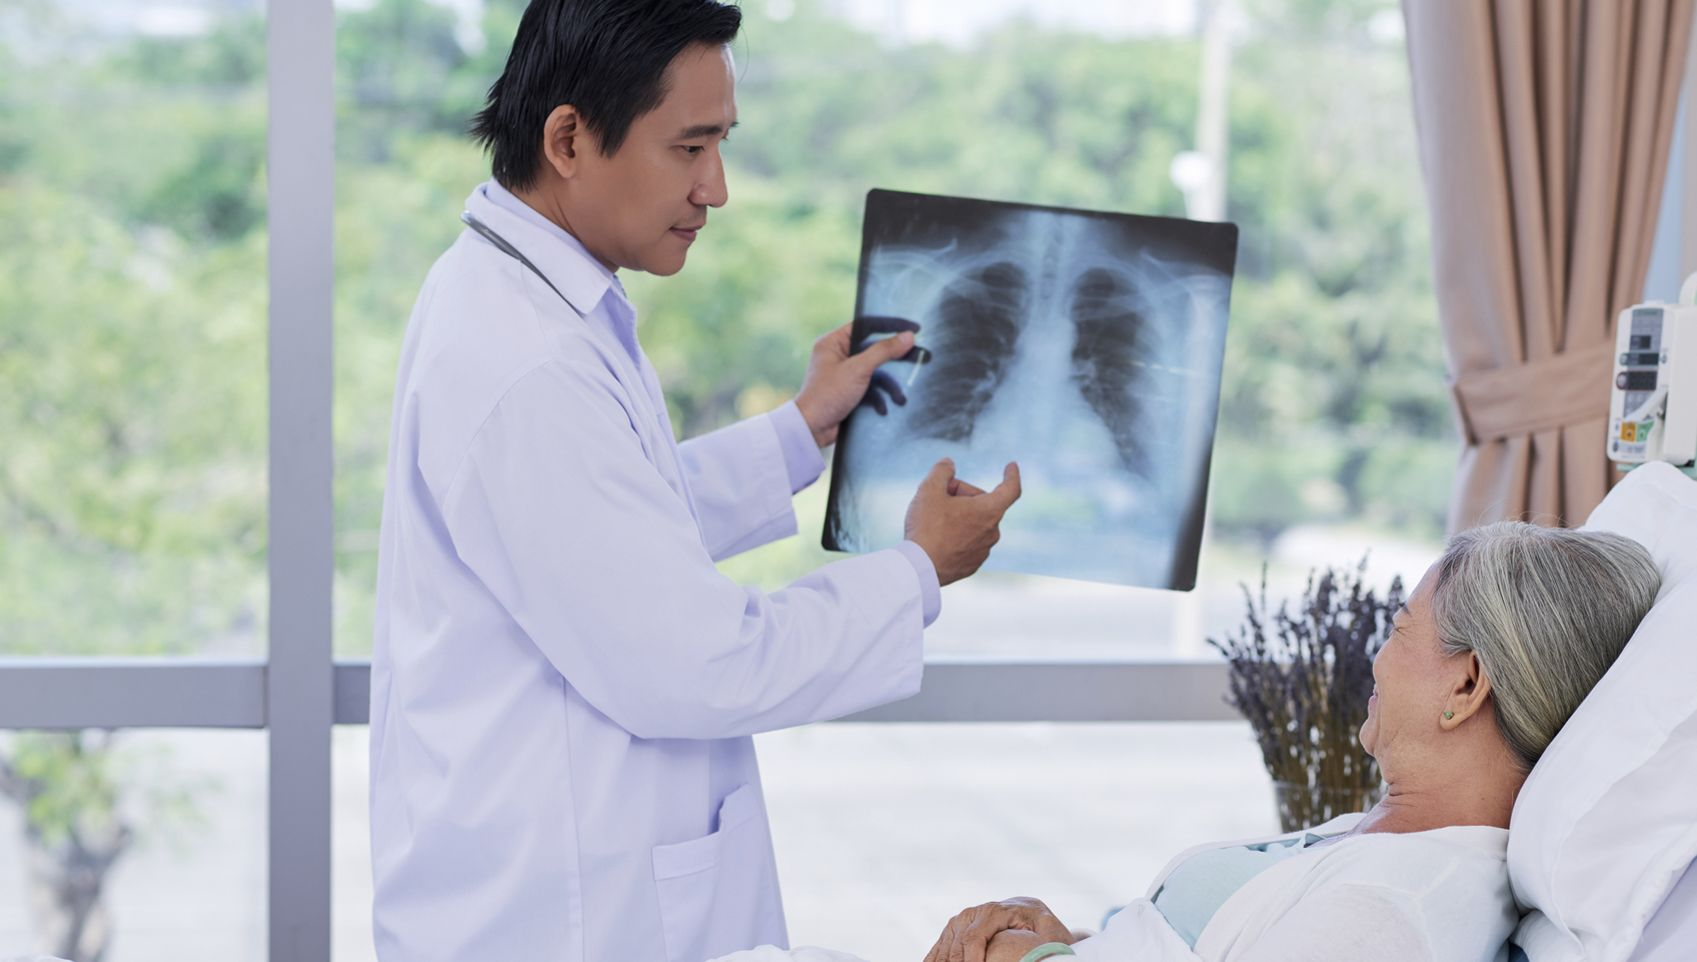 What You Need to Know About Pneumonia